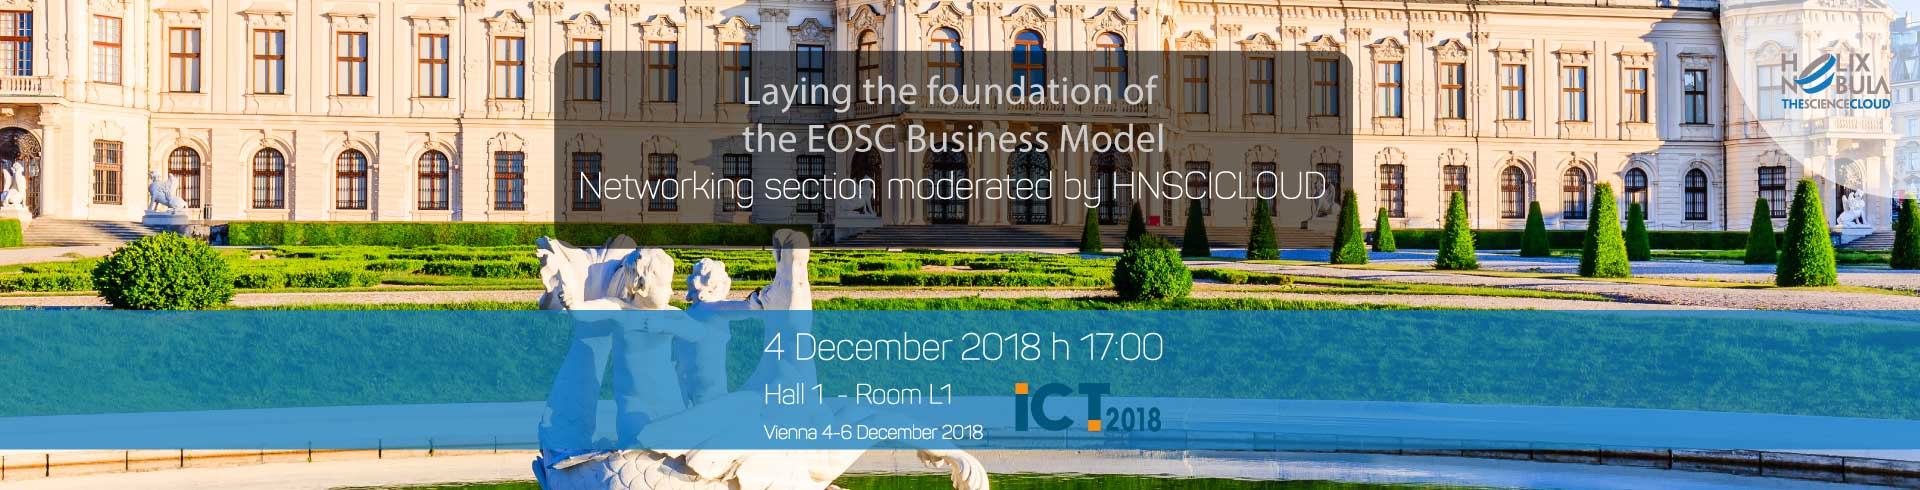 Laying the foundation of the EOSC Business Model